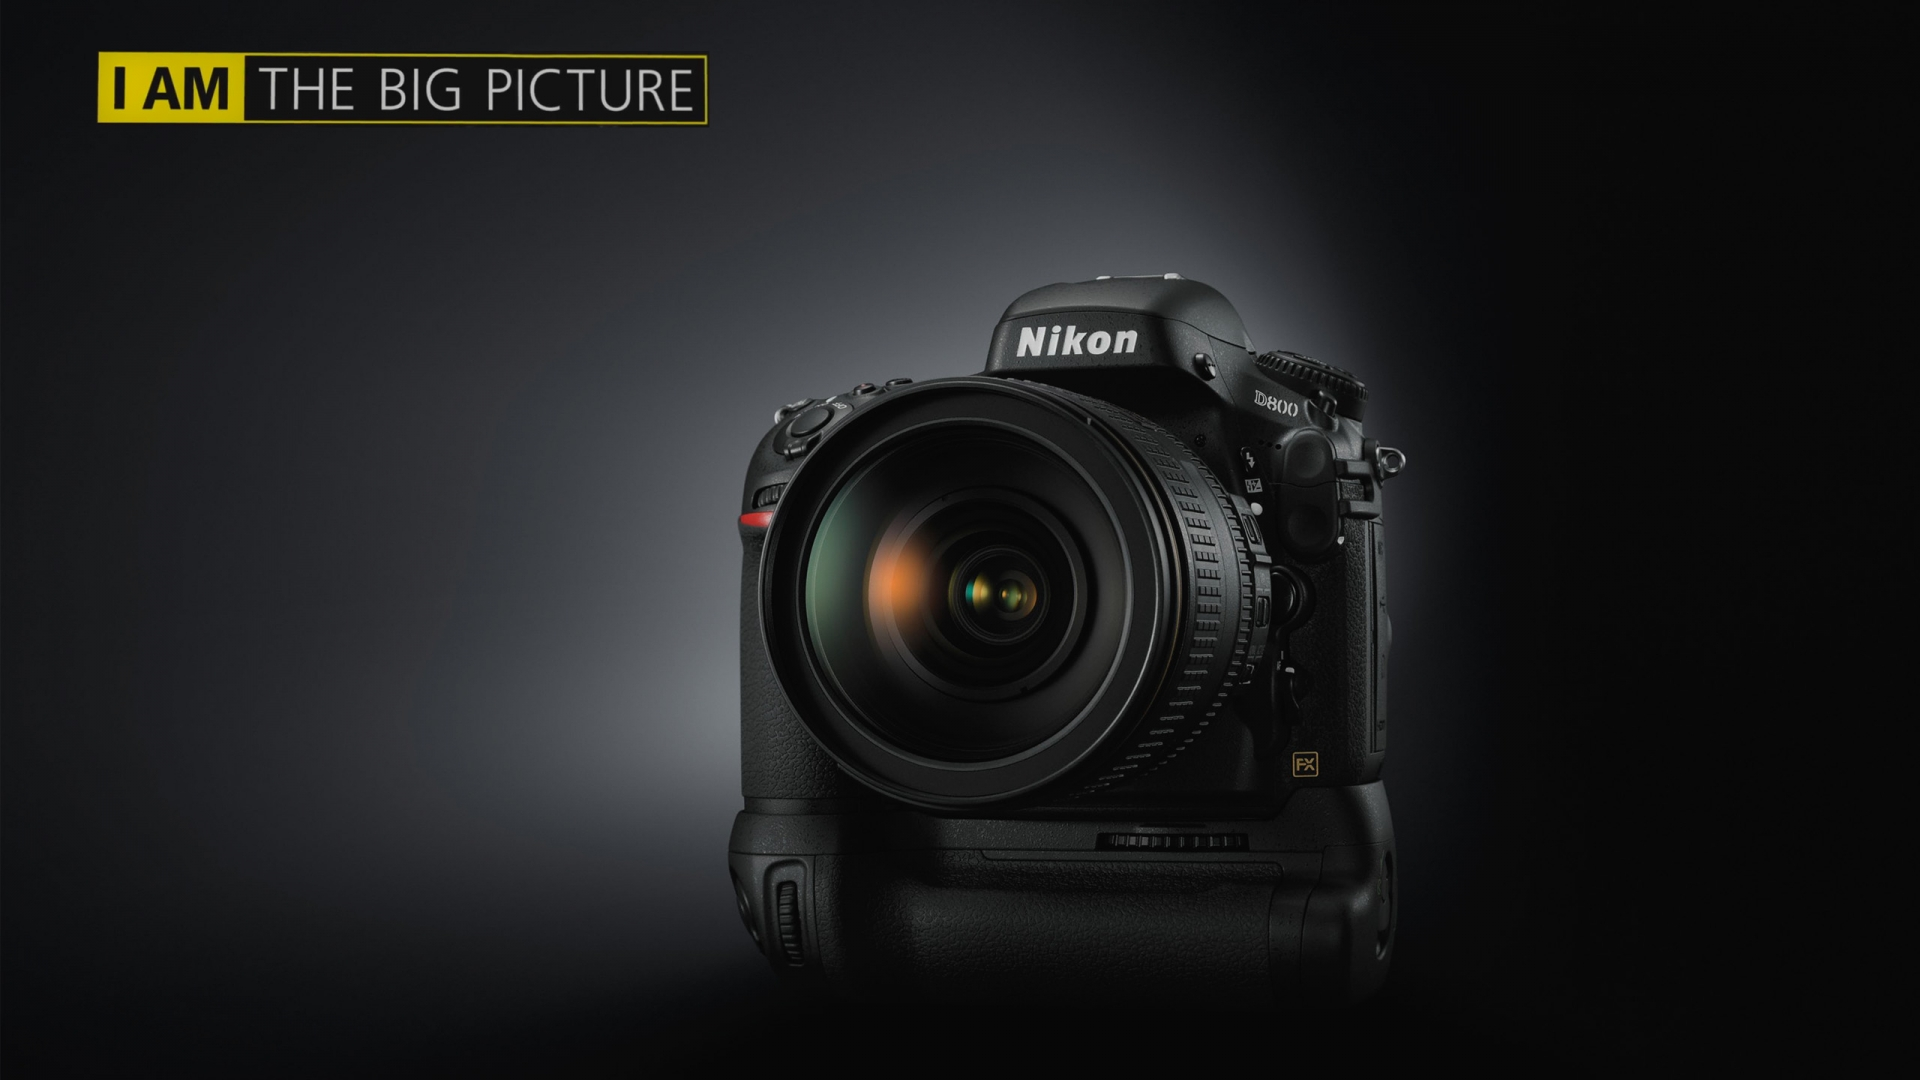 nikon-d800-wallpaper-for-1920x1080-hdtv-1080p-505-